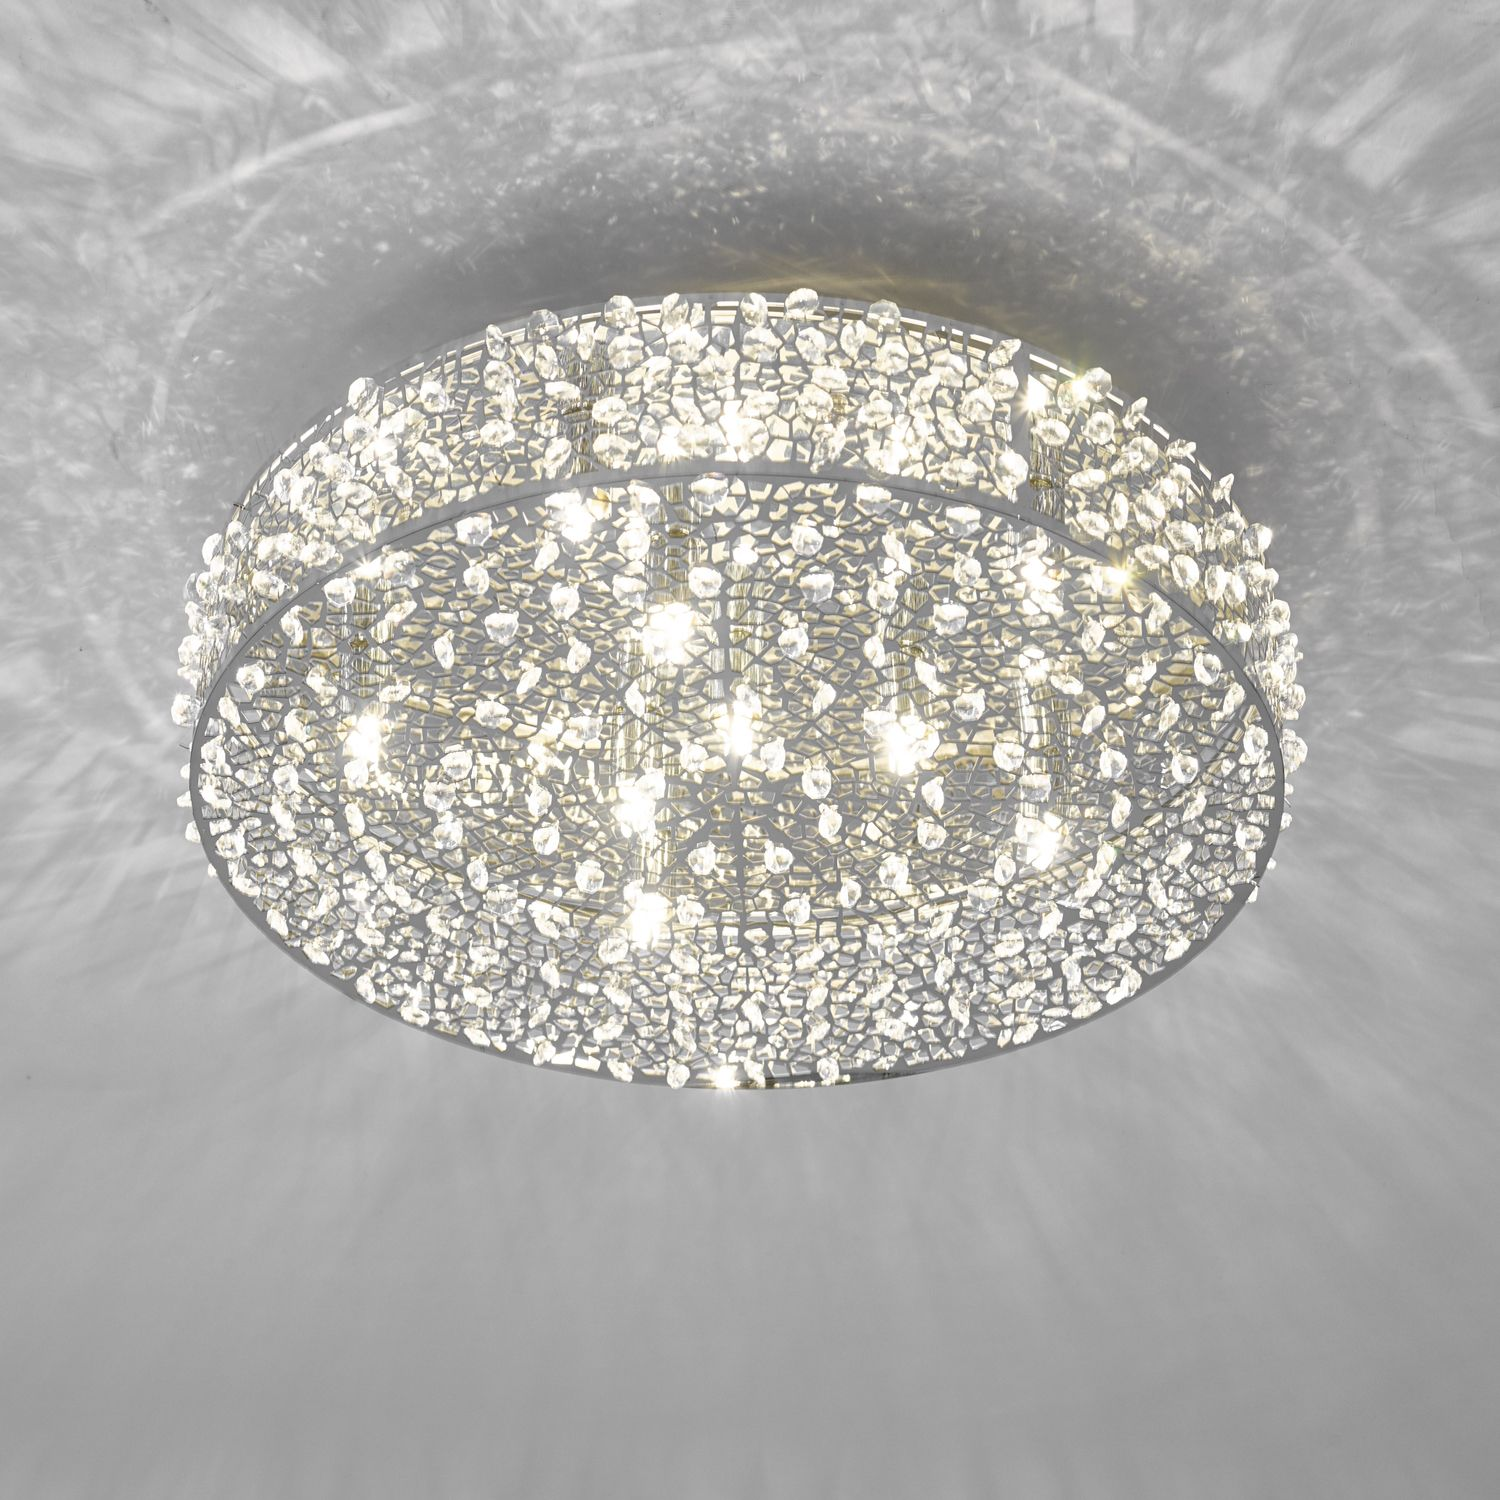 Kotaro 6 Bulb Polished Chrome & Crystal Flush Ceiling Light